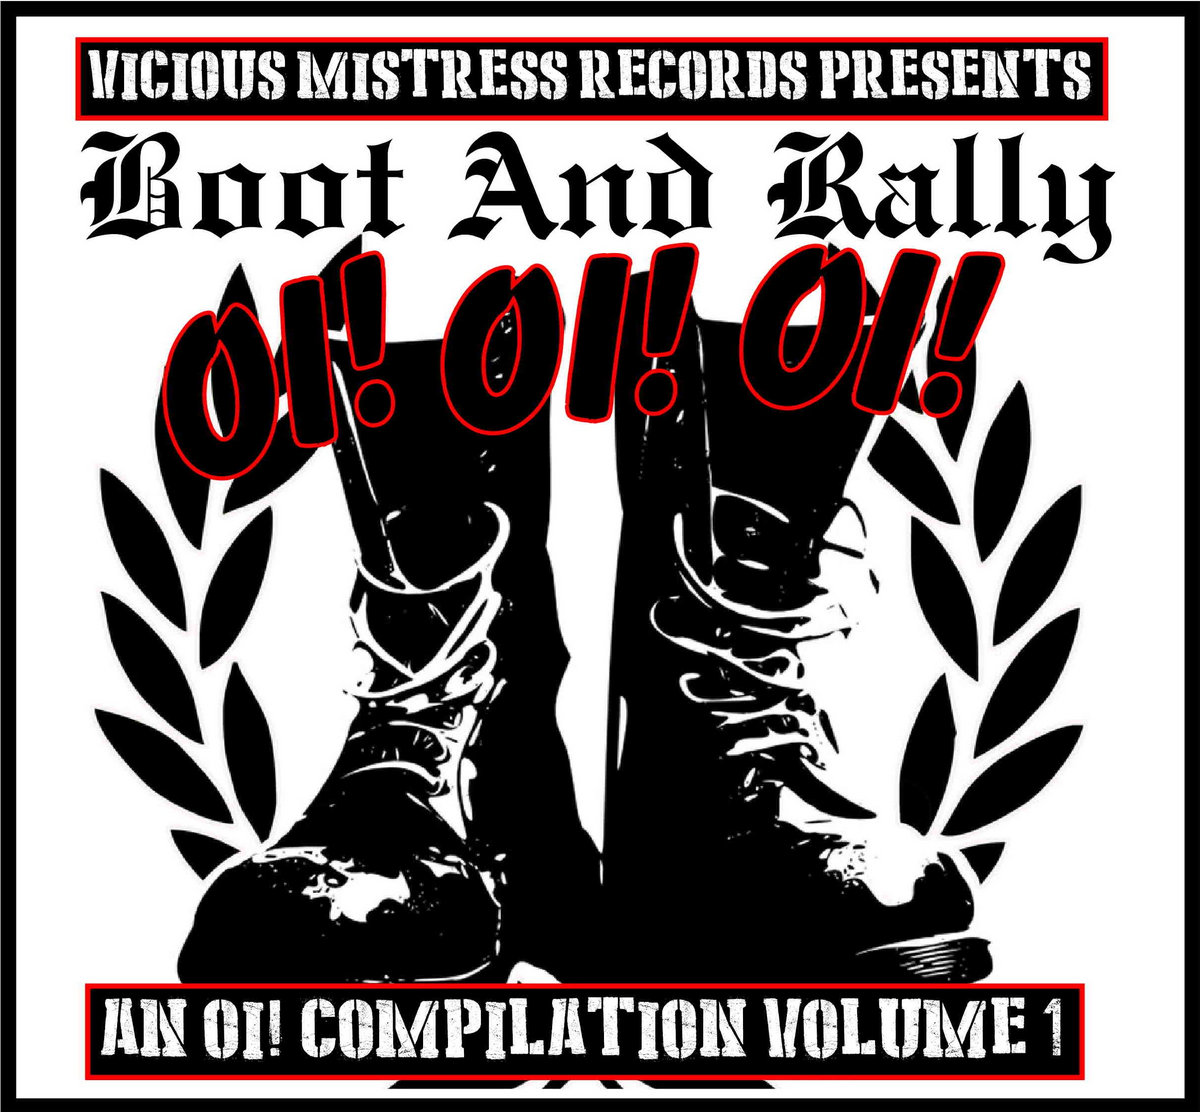 boot and rally oi oi oi vol 1 vicious mistress records